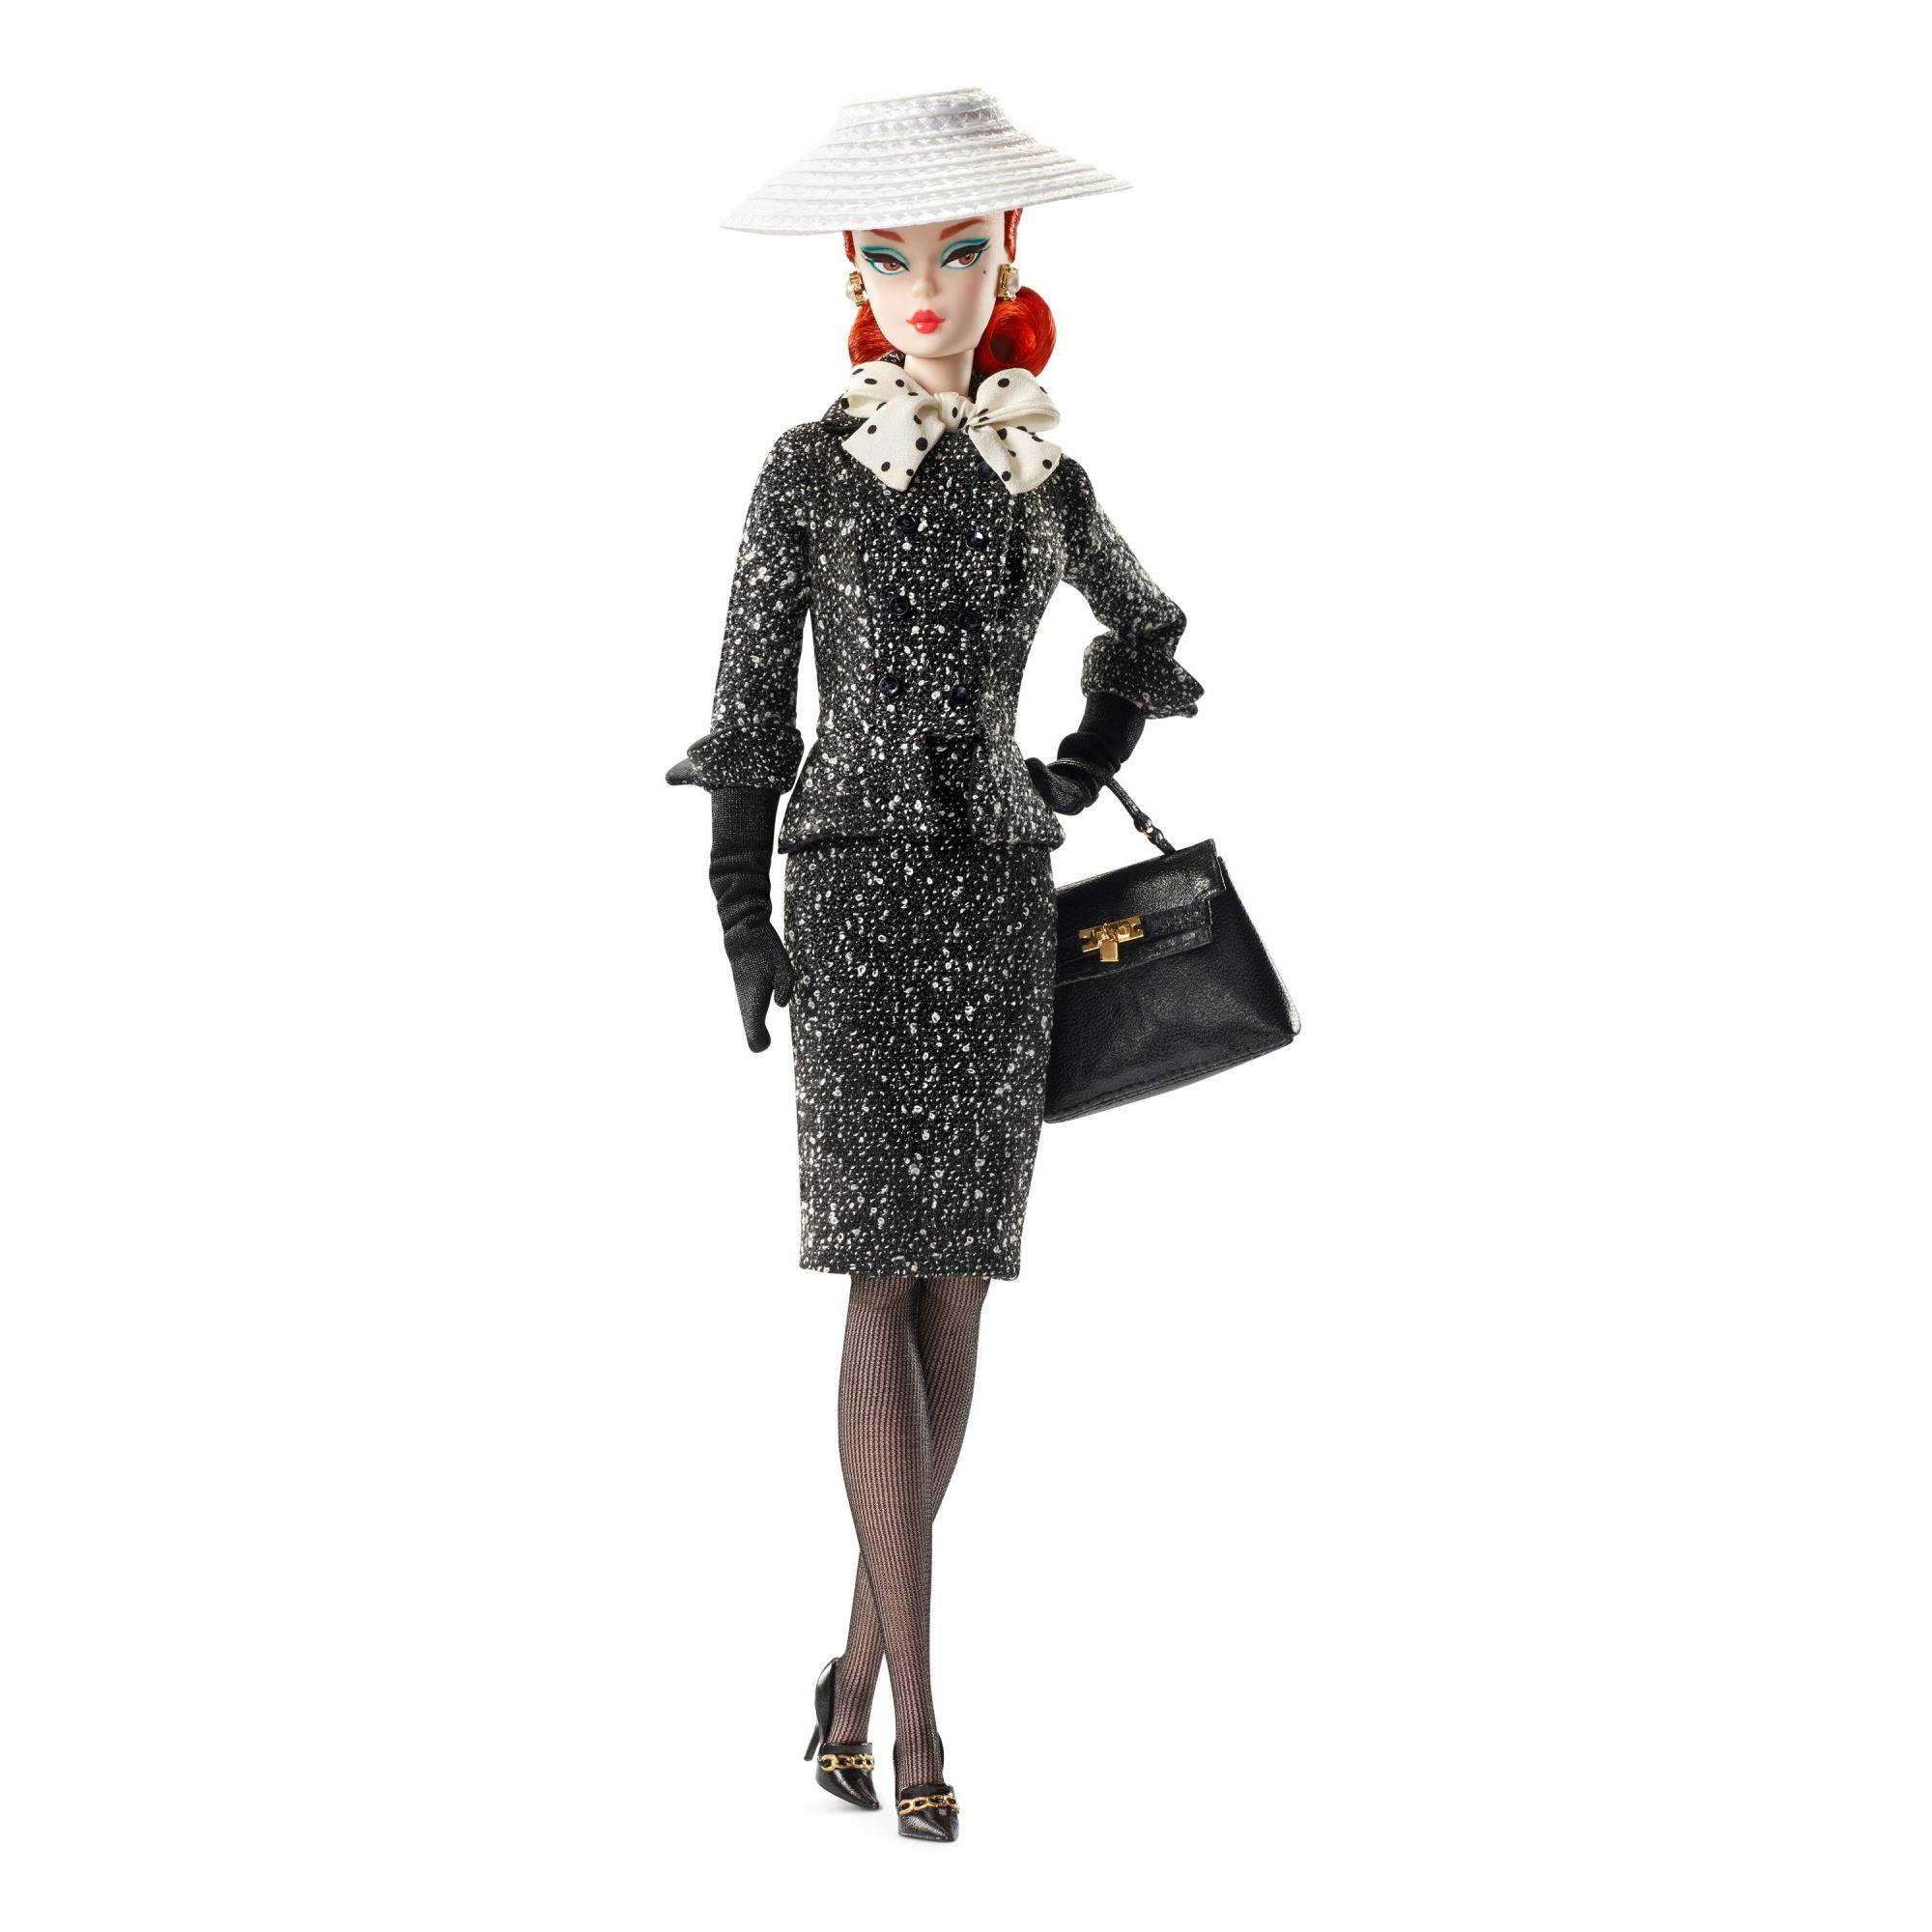 Barbie Collector Barbie Fashion Model Collection Black & White Tweed Suit Doll by Mattel